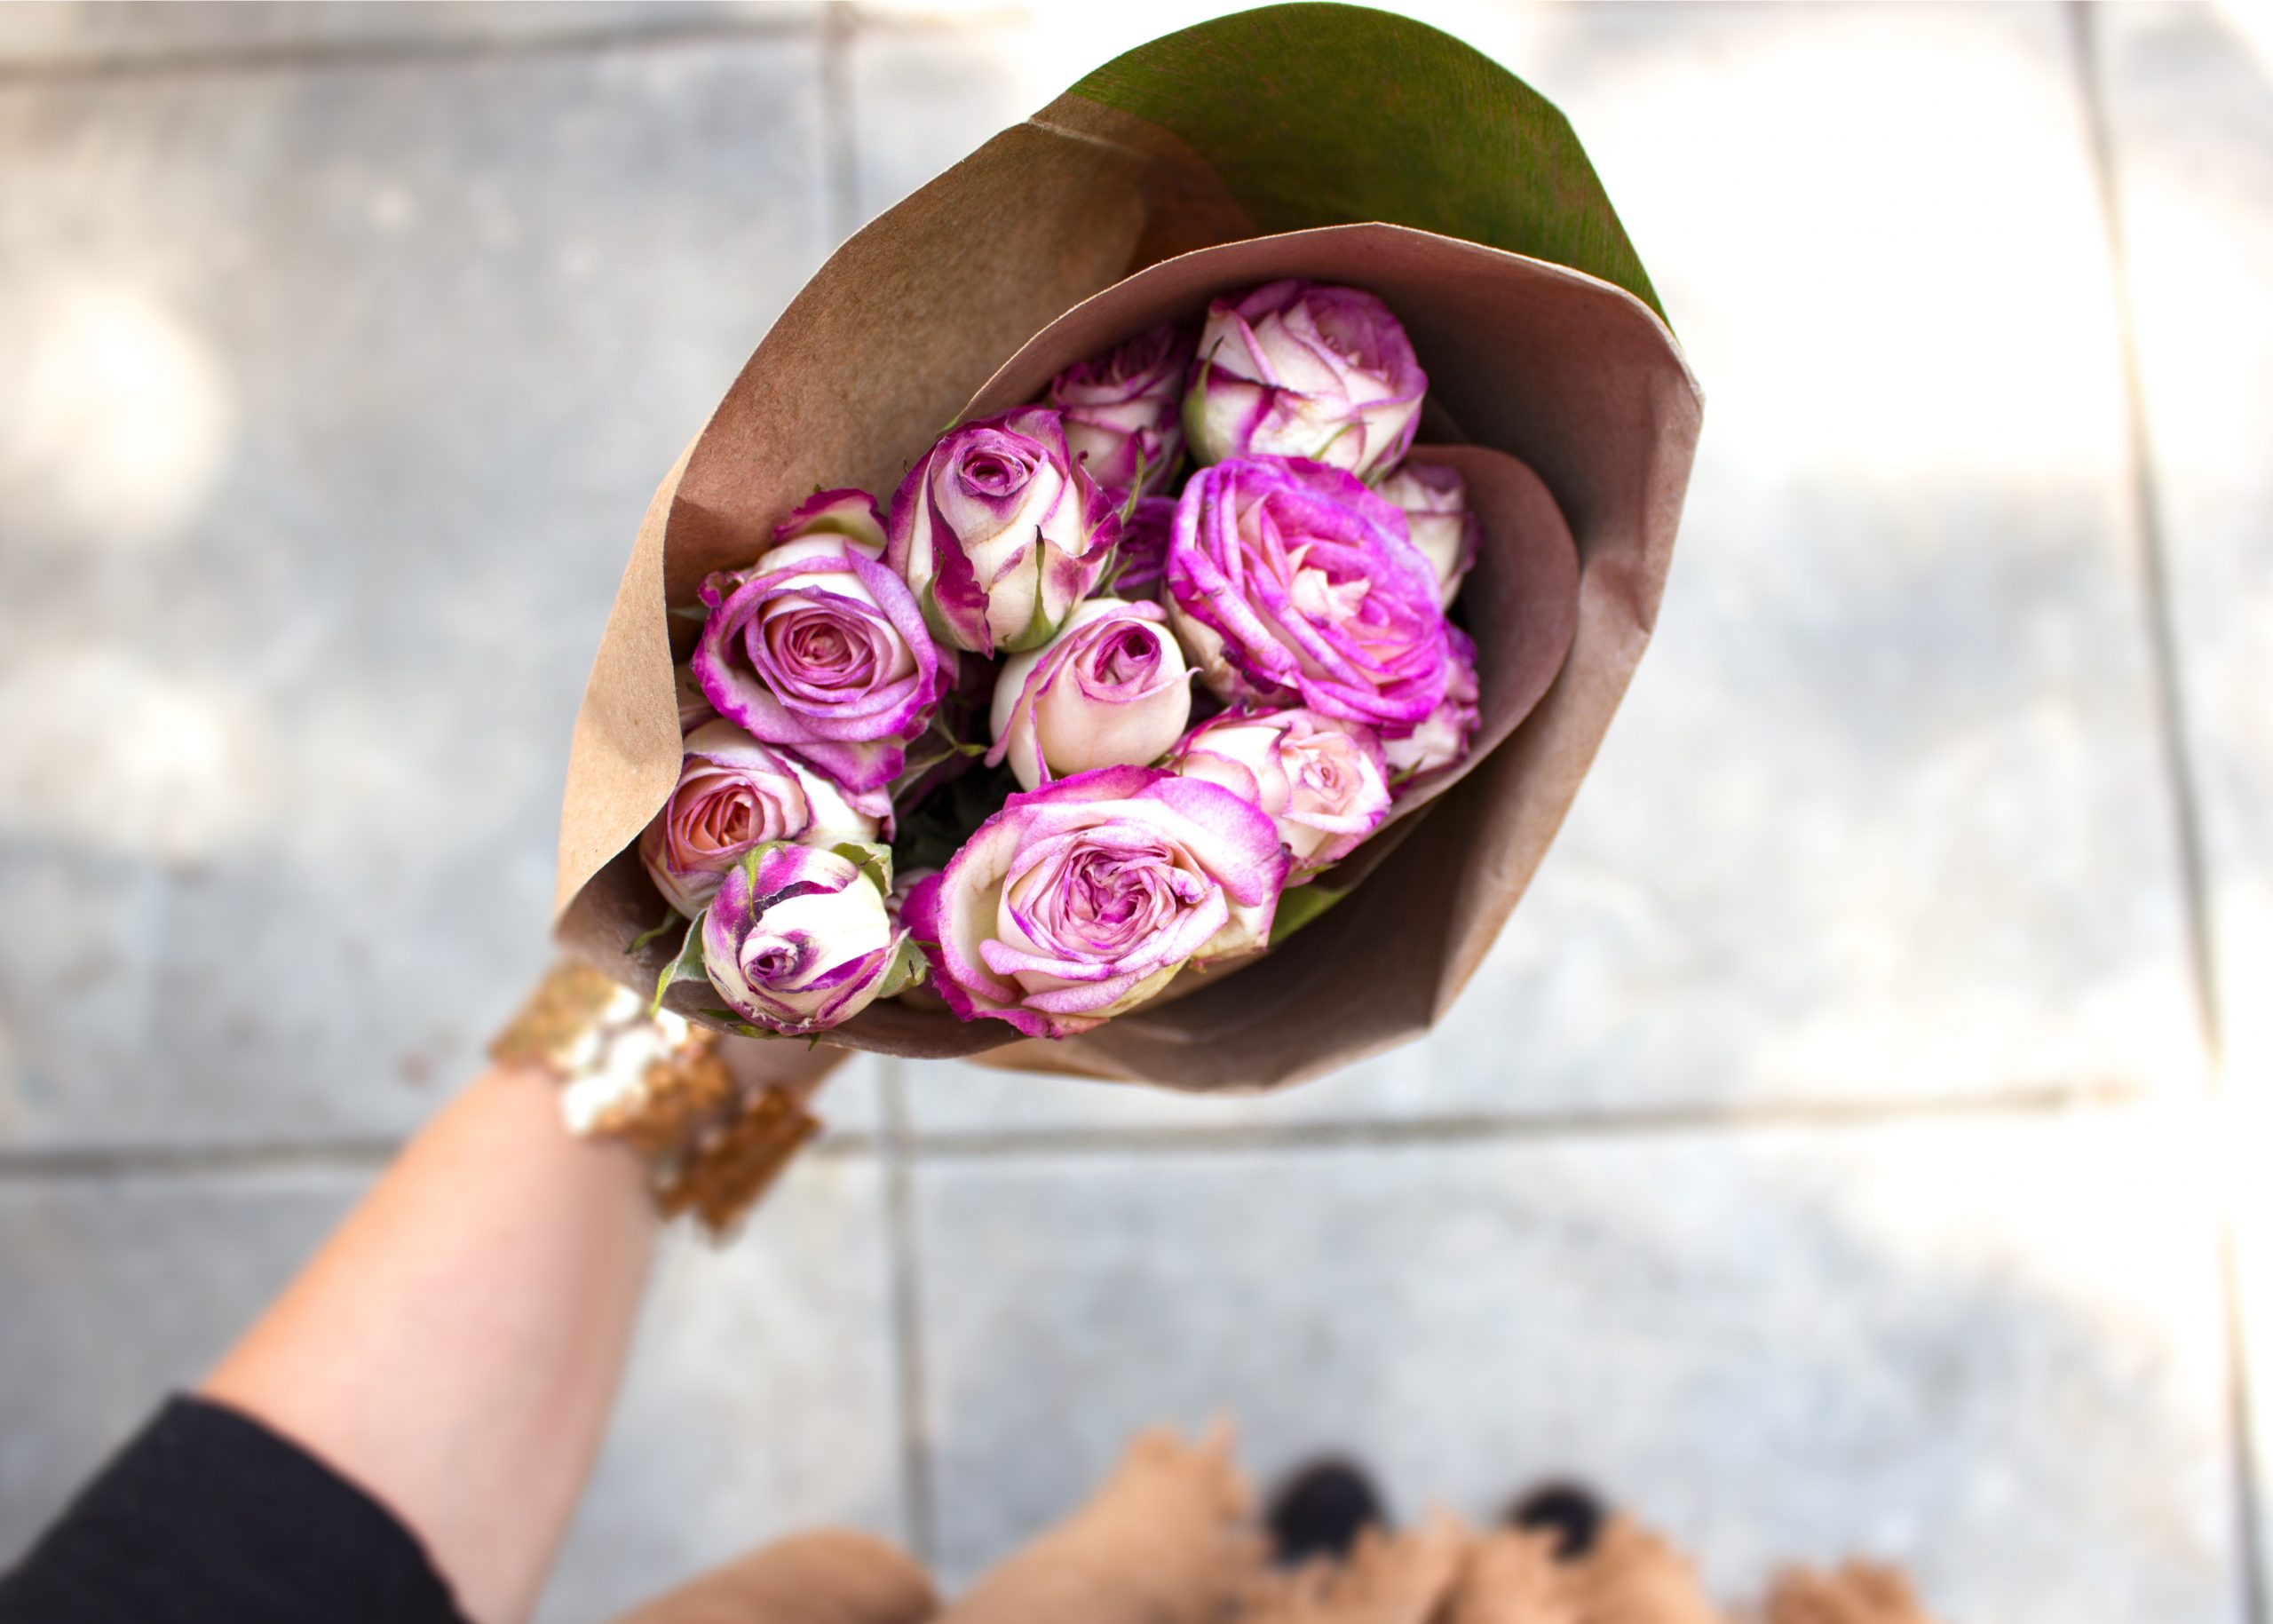 15 self-care quotes to motivate and inspire you